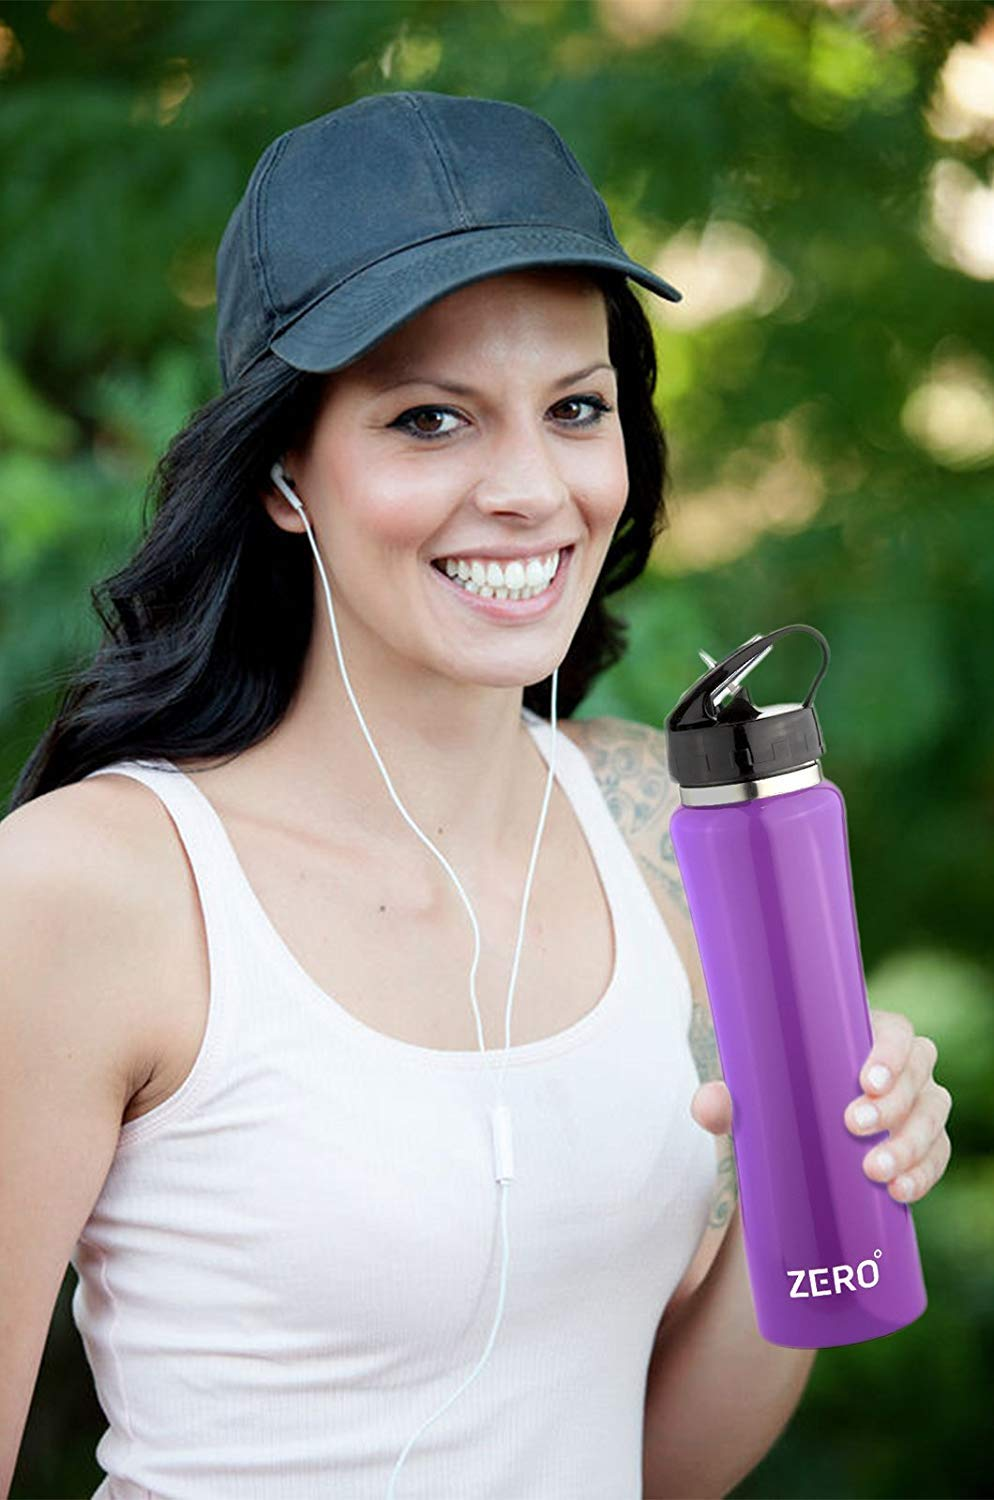 Zero Degree Stainless Steel Water Bottle with Straw and Leak Proof Lid